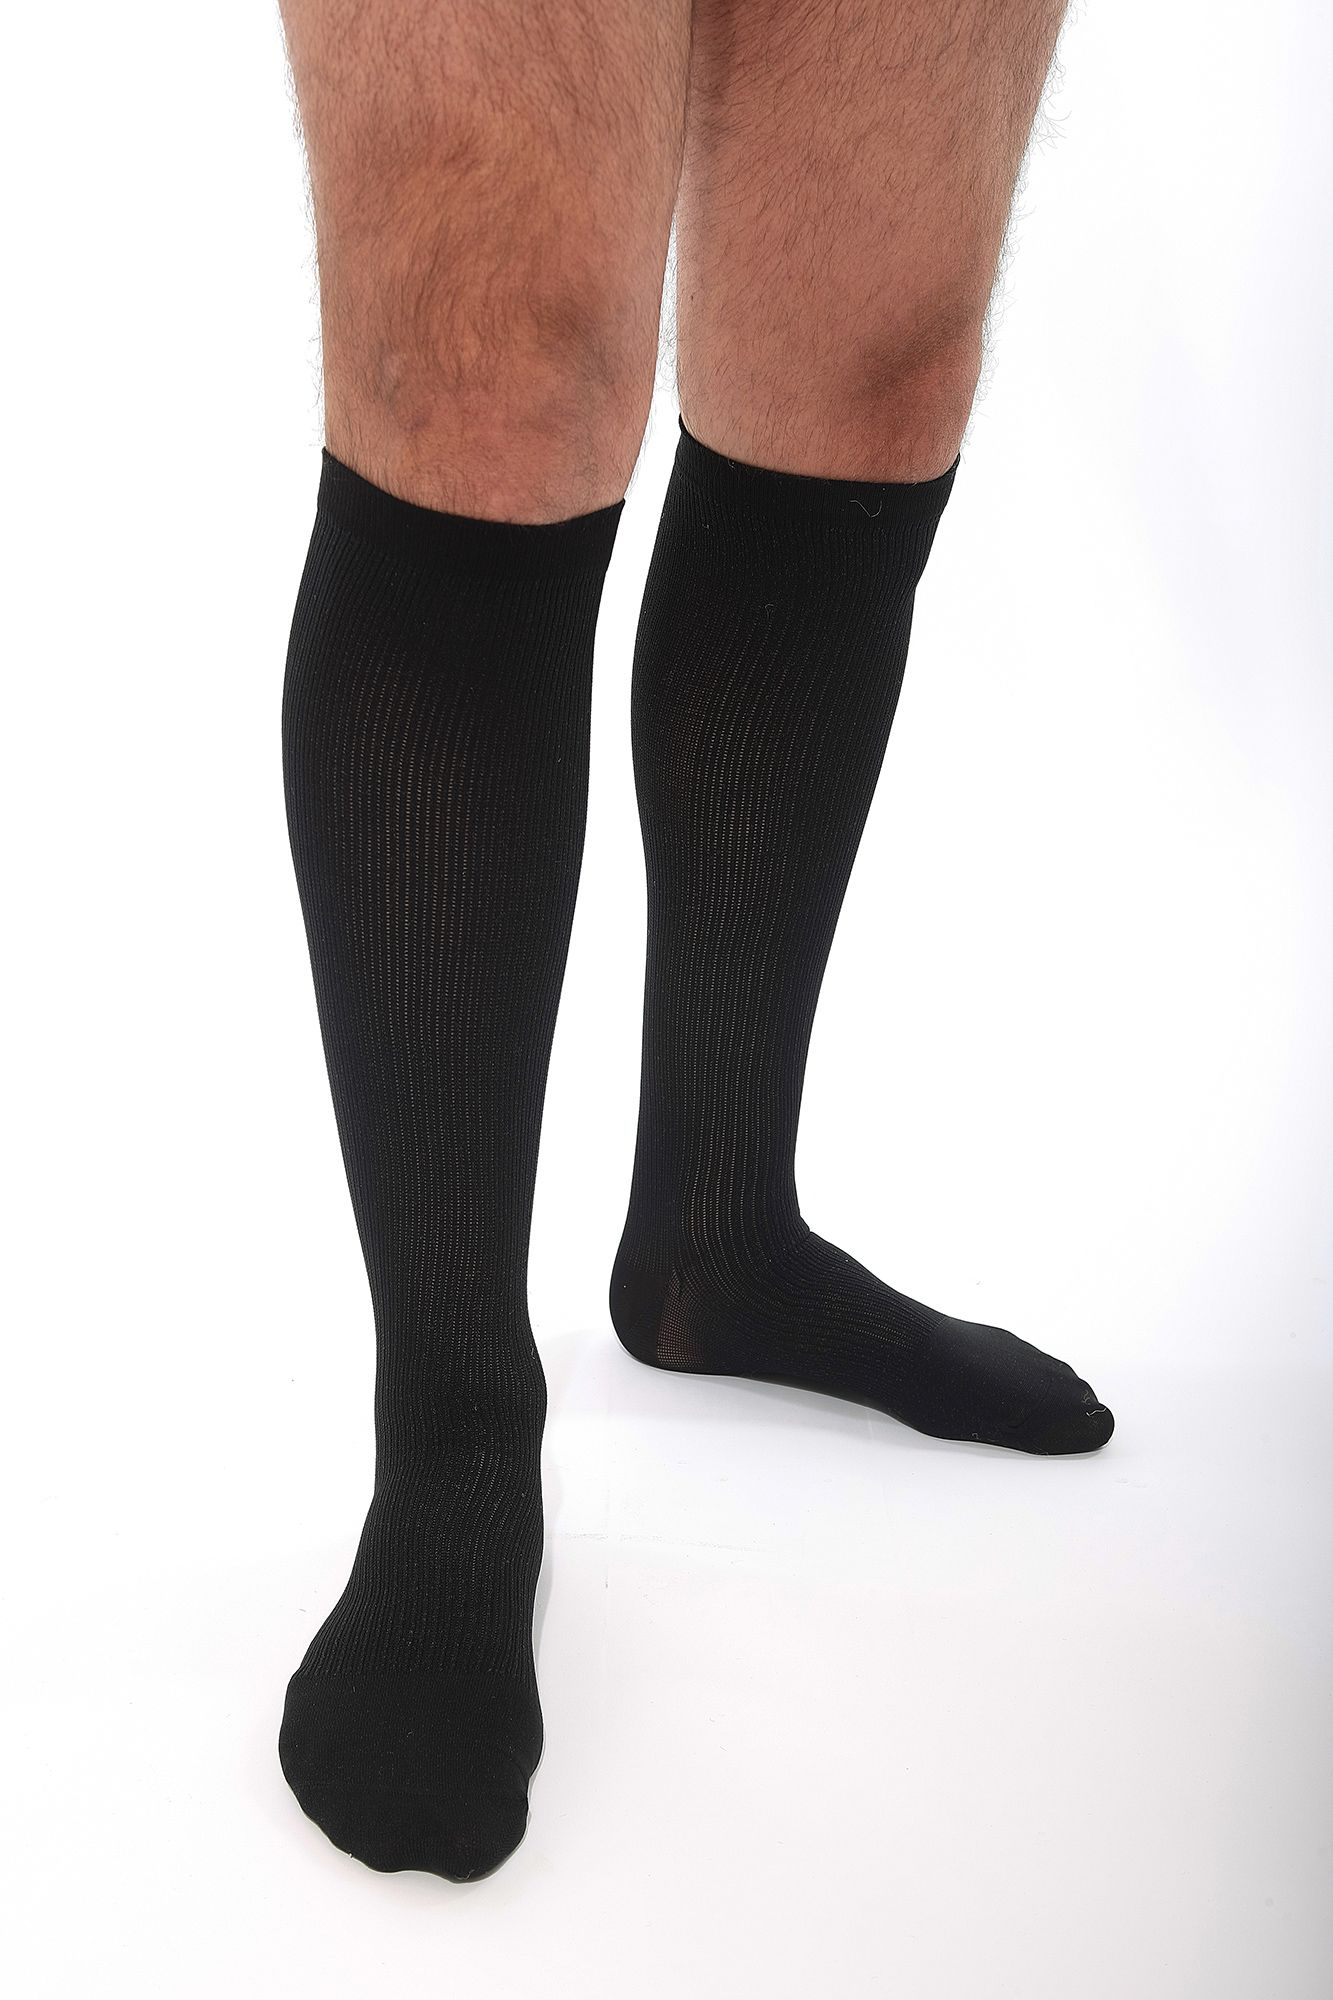 Venosan 174 Microfiberline Mens Compression Socks 15 20mmhg